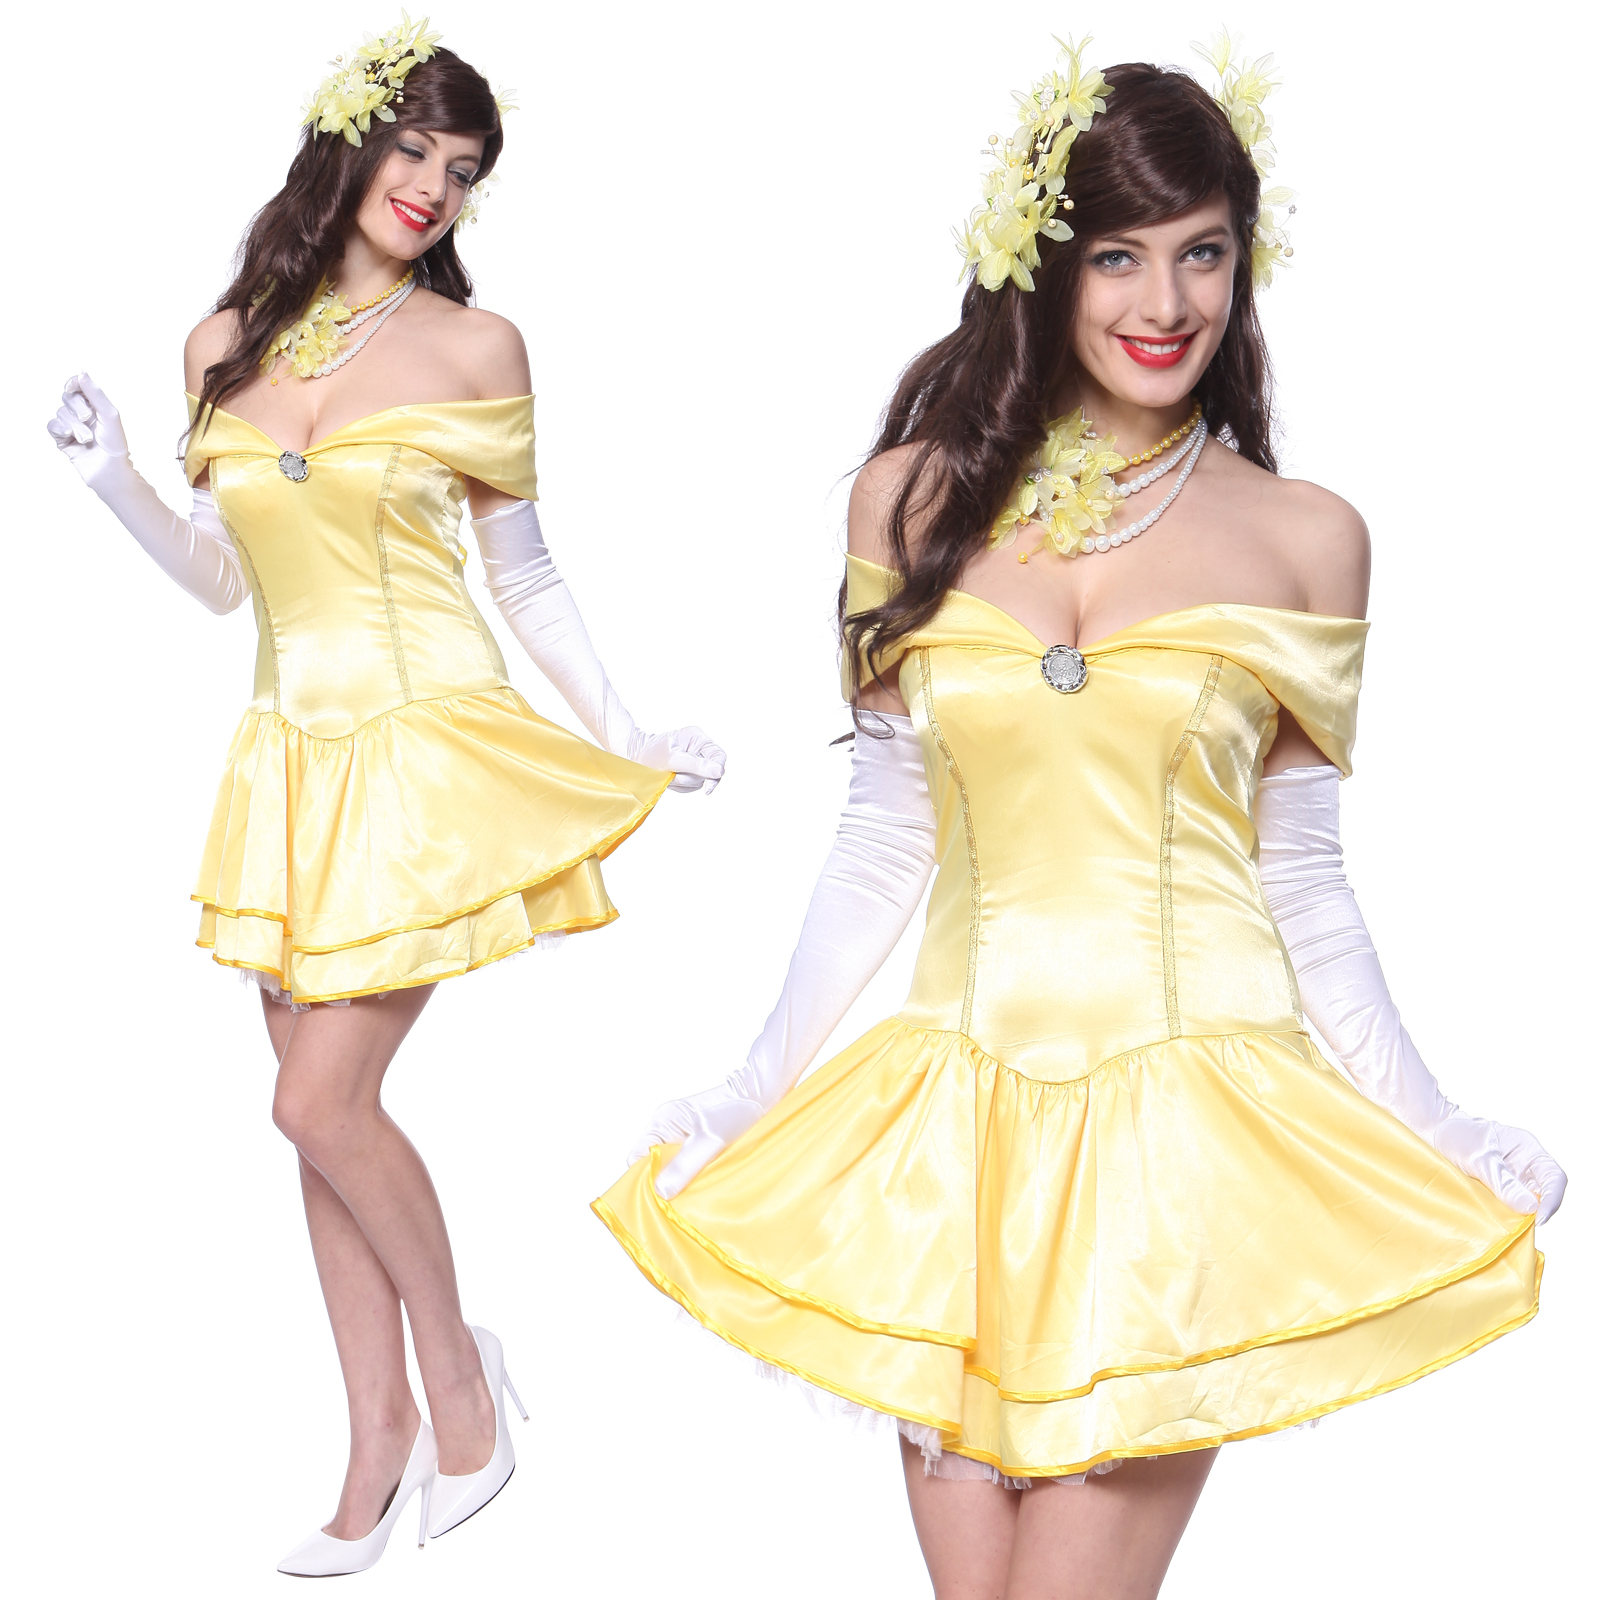 Fairy tale adult costumes erotic pics